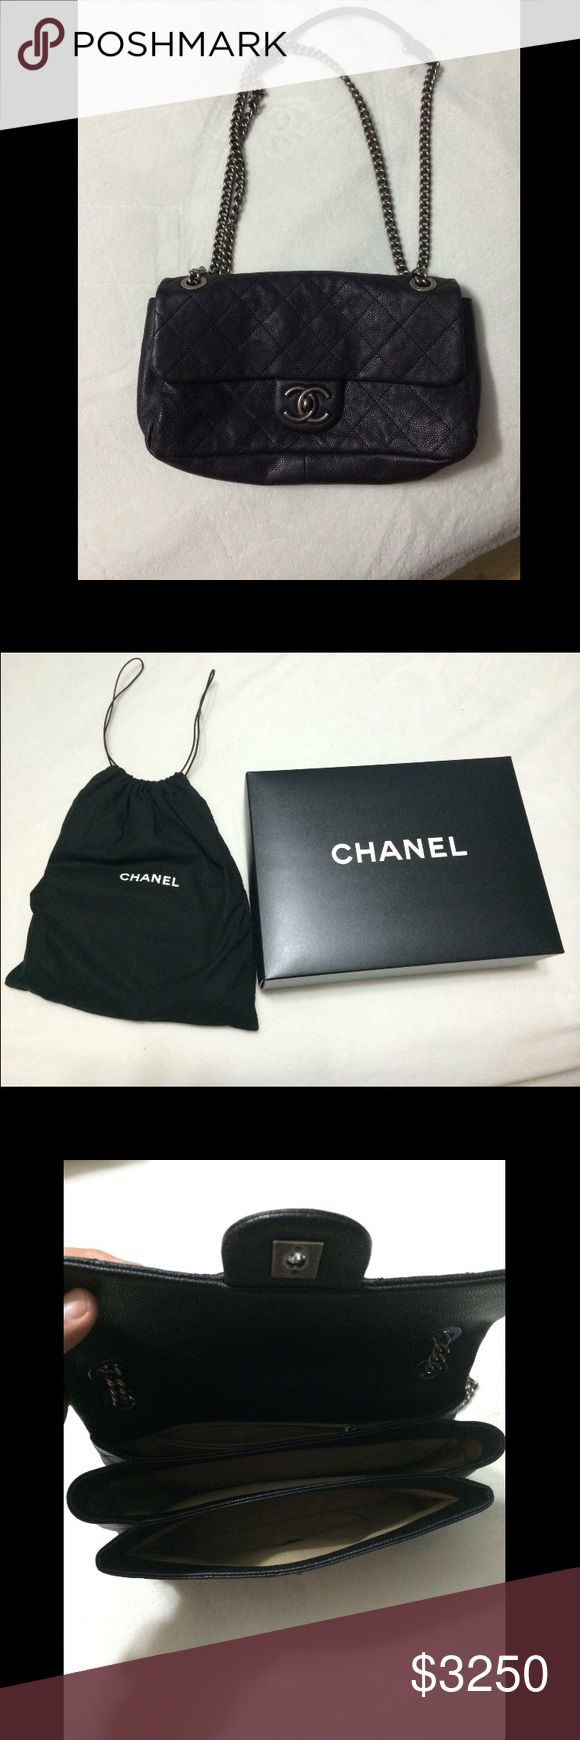 Chanel Winter Collection 2013 100% authentic, purchased at the Domain in Austin, Niemen Marcus...it's too small for me, I've literally never worn it. It's been sitting in its dust bag& box. Time to just get rid of it. Ask questions if you have any. Box, authenticity card & dust bag all included. 10X6 can also be used as a cross body. CHANEL Bags Shoulder Bags